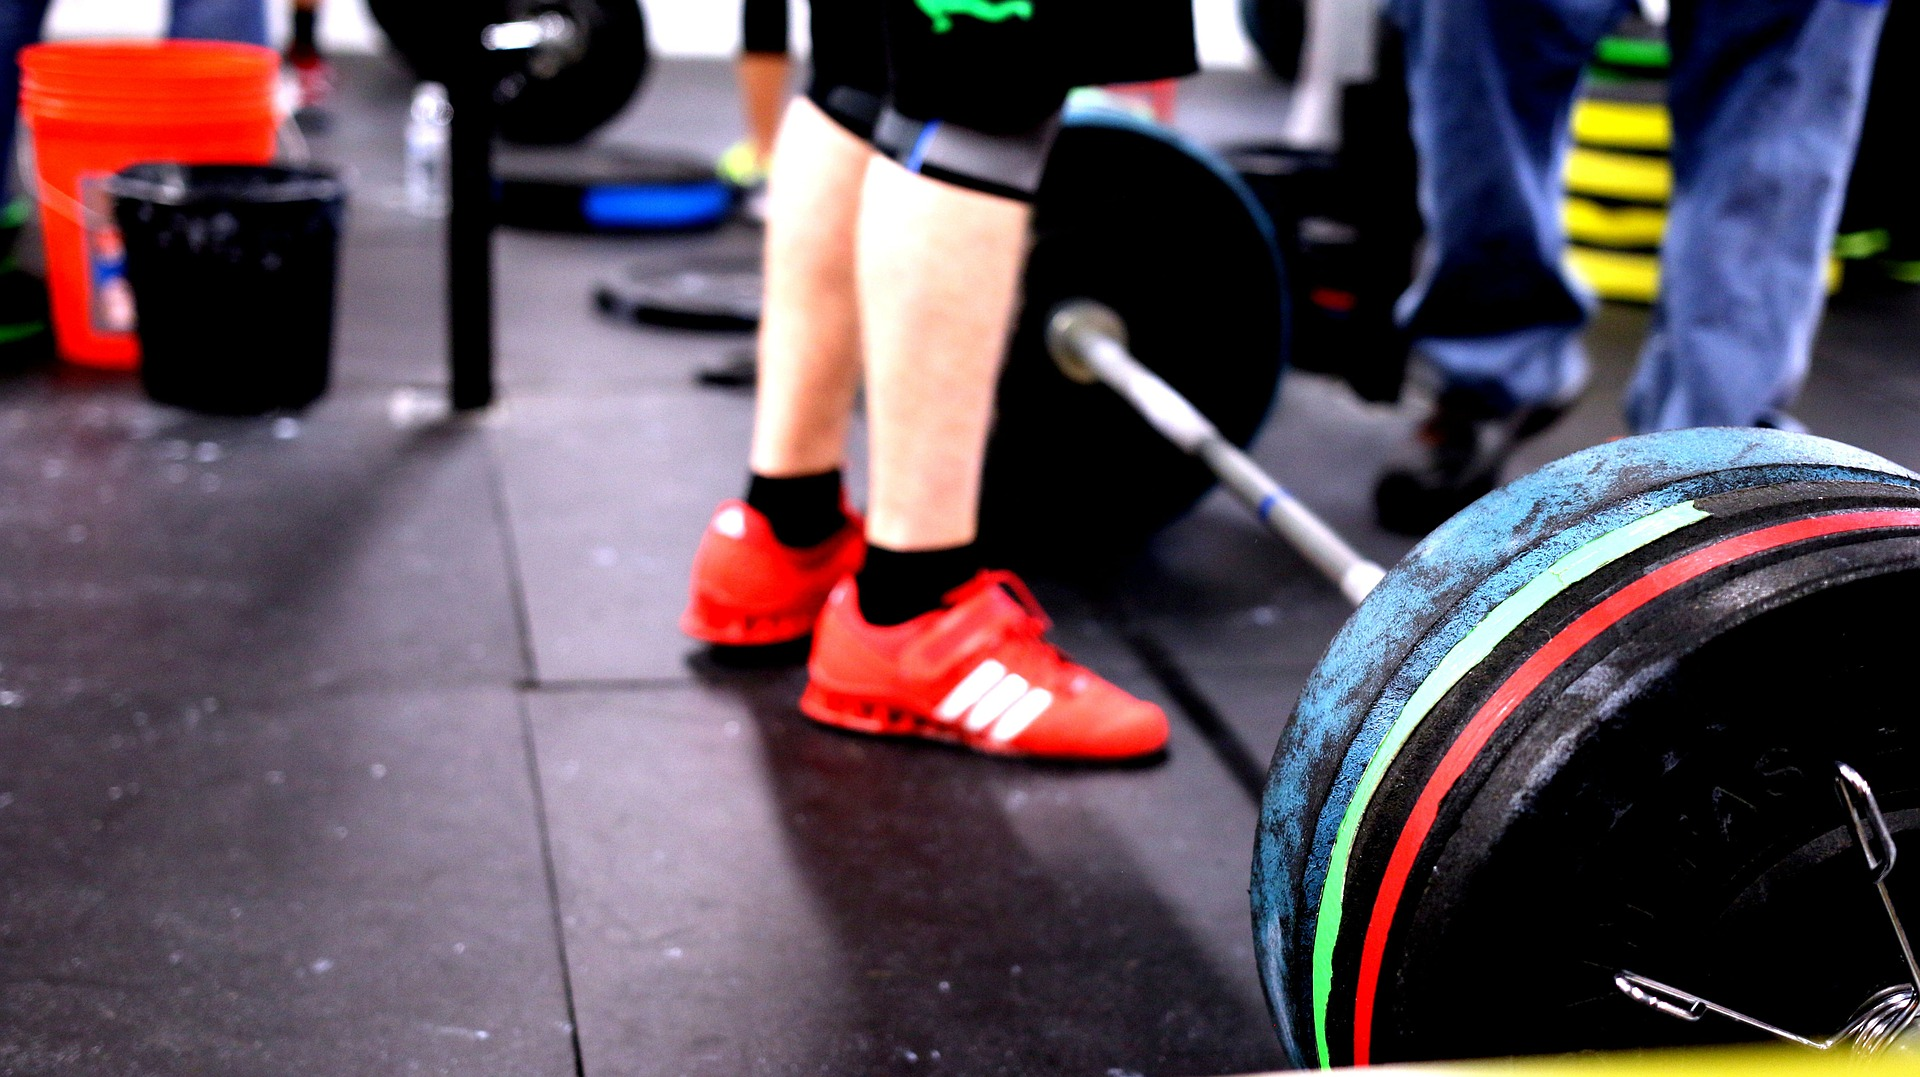 barbell weightlifting shoes.jpg